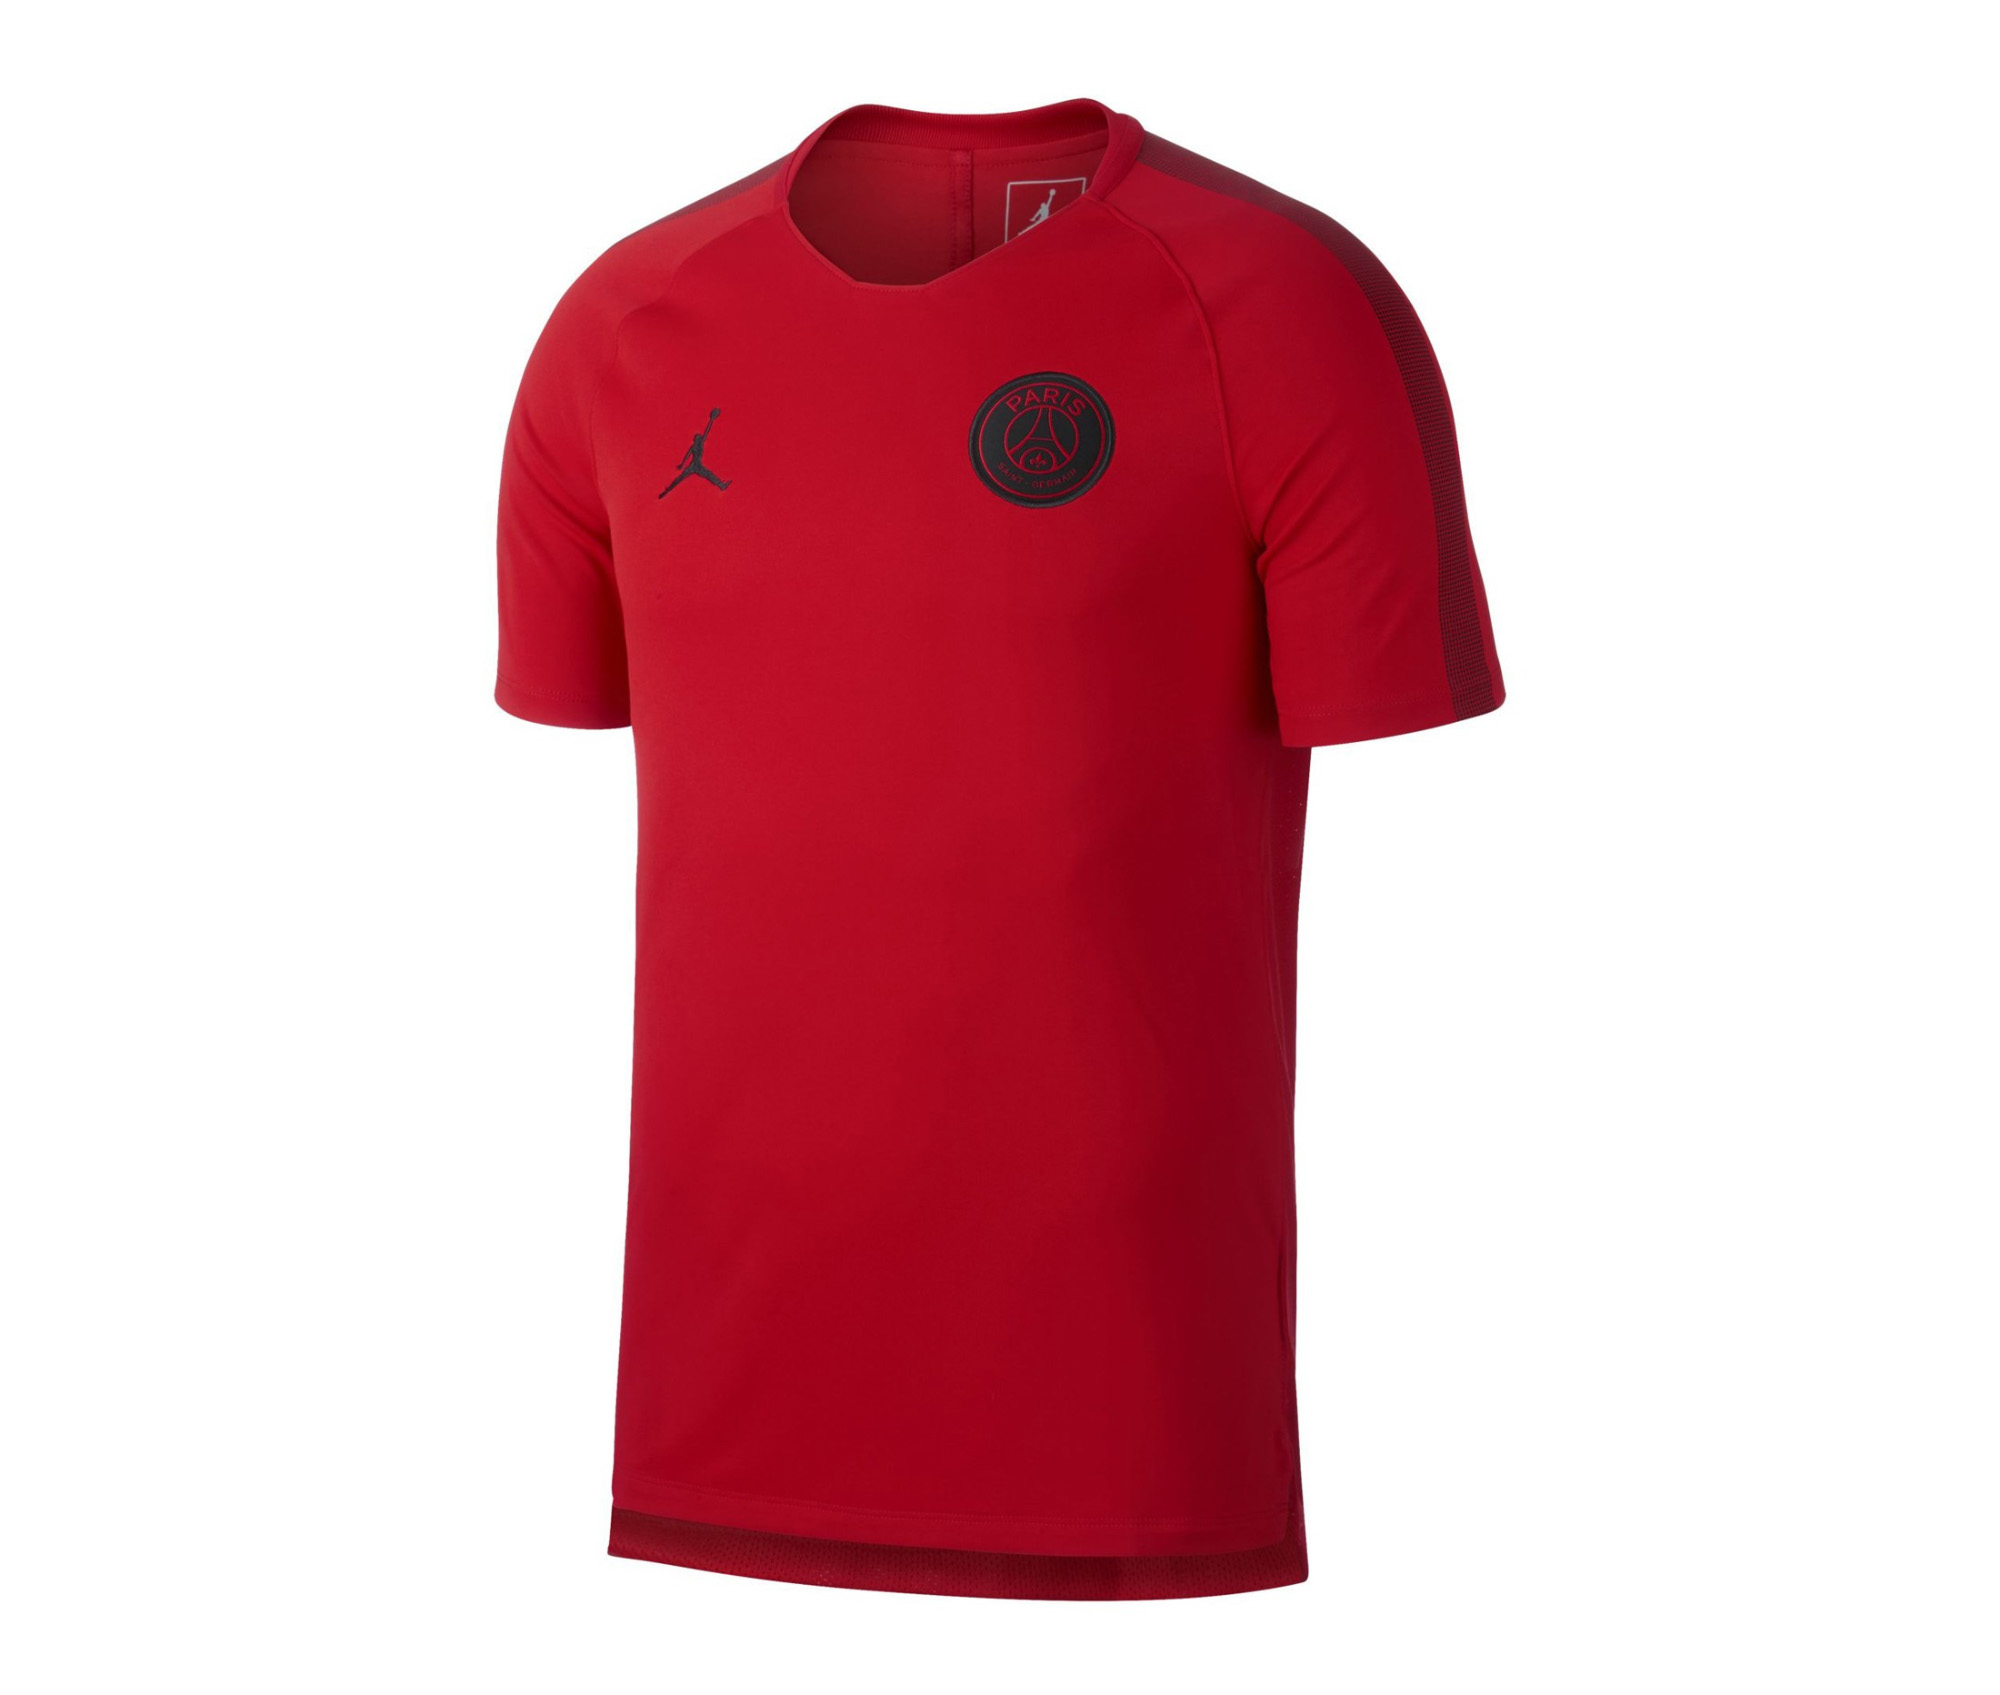 00aaf6dd7 Jordan Paris Saint-Germain 2018/19 Pre-Match Shirt - Soccer Shop Paris  Saint Germain Merchandise - Superfanas.lt